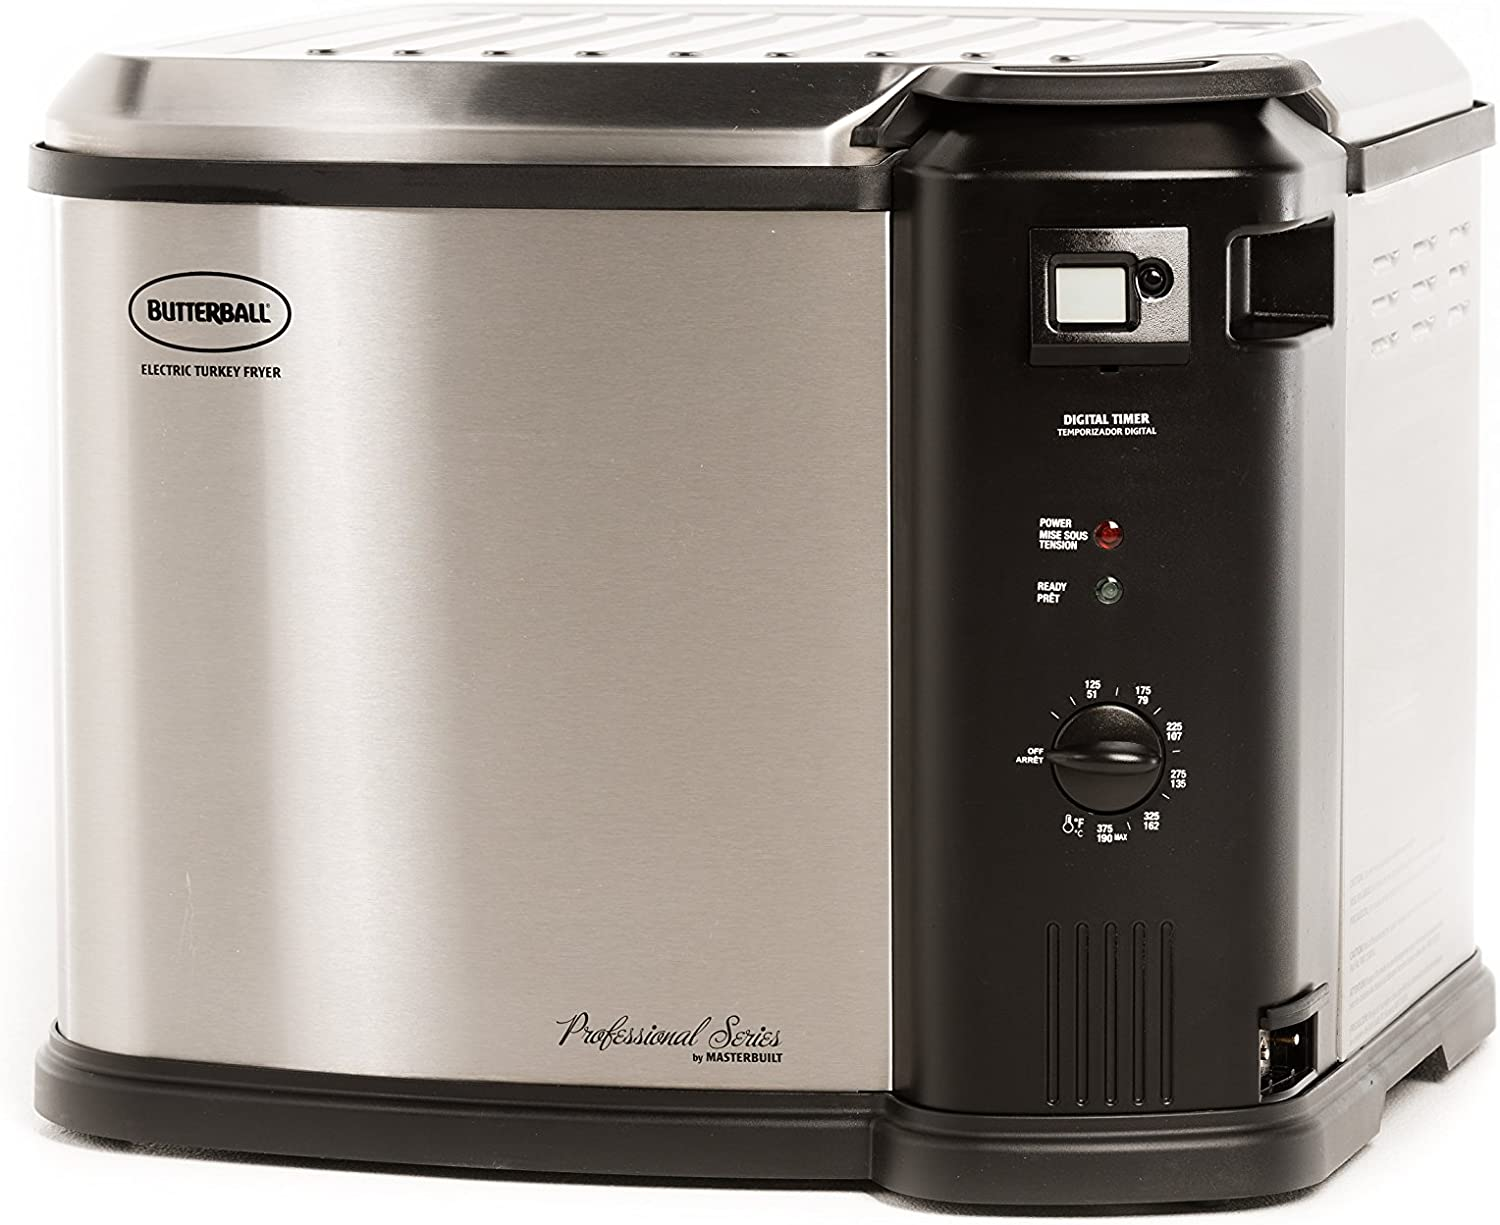 23011615 Butterball XL Electric Fryer